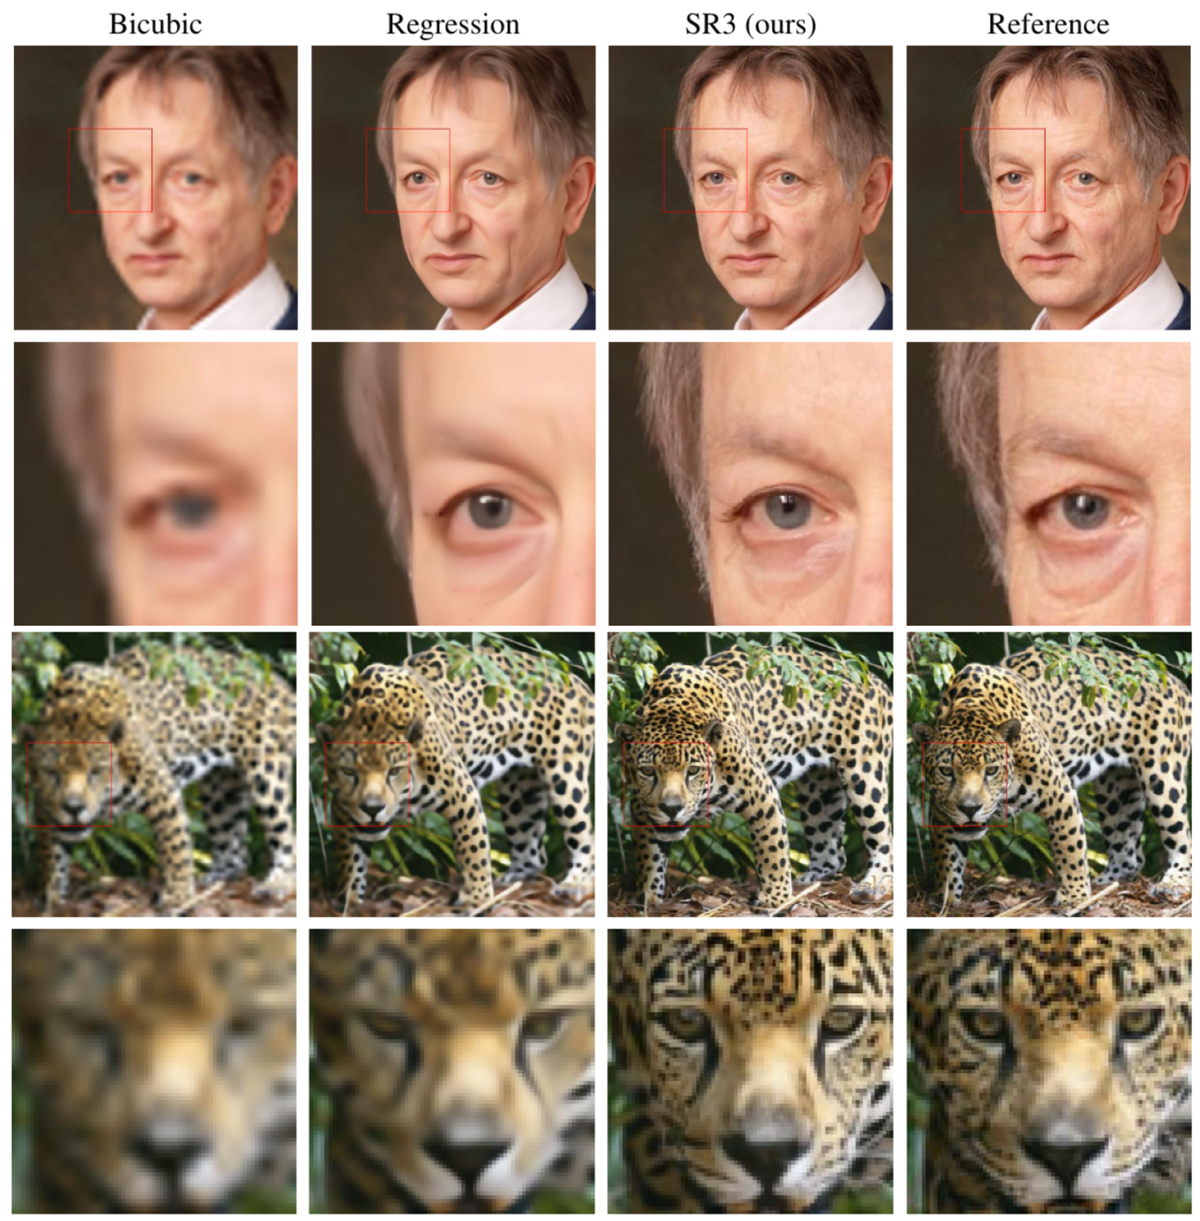 Google AI Turns Low-Res Images To High-Res - Super Resolution SR3 Model (5)